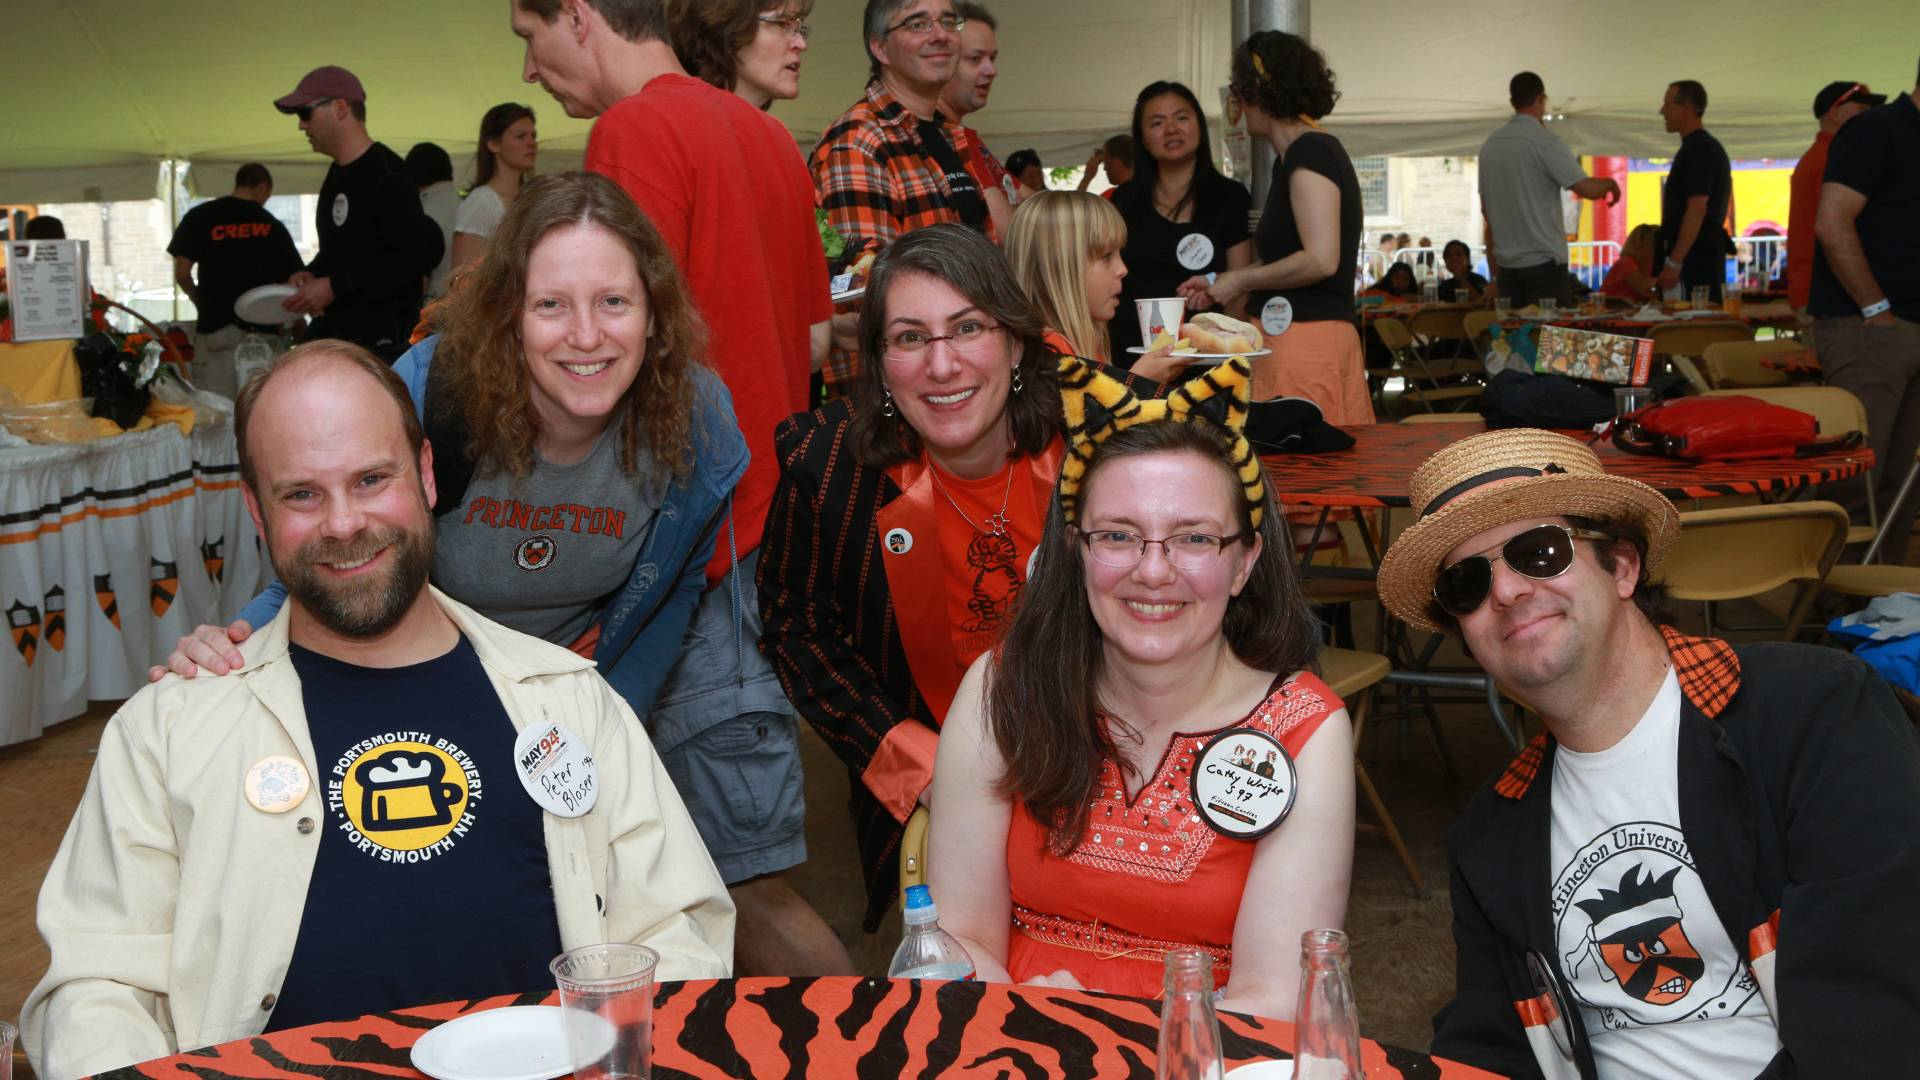 Photo of friends and families at reunions posing at table